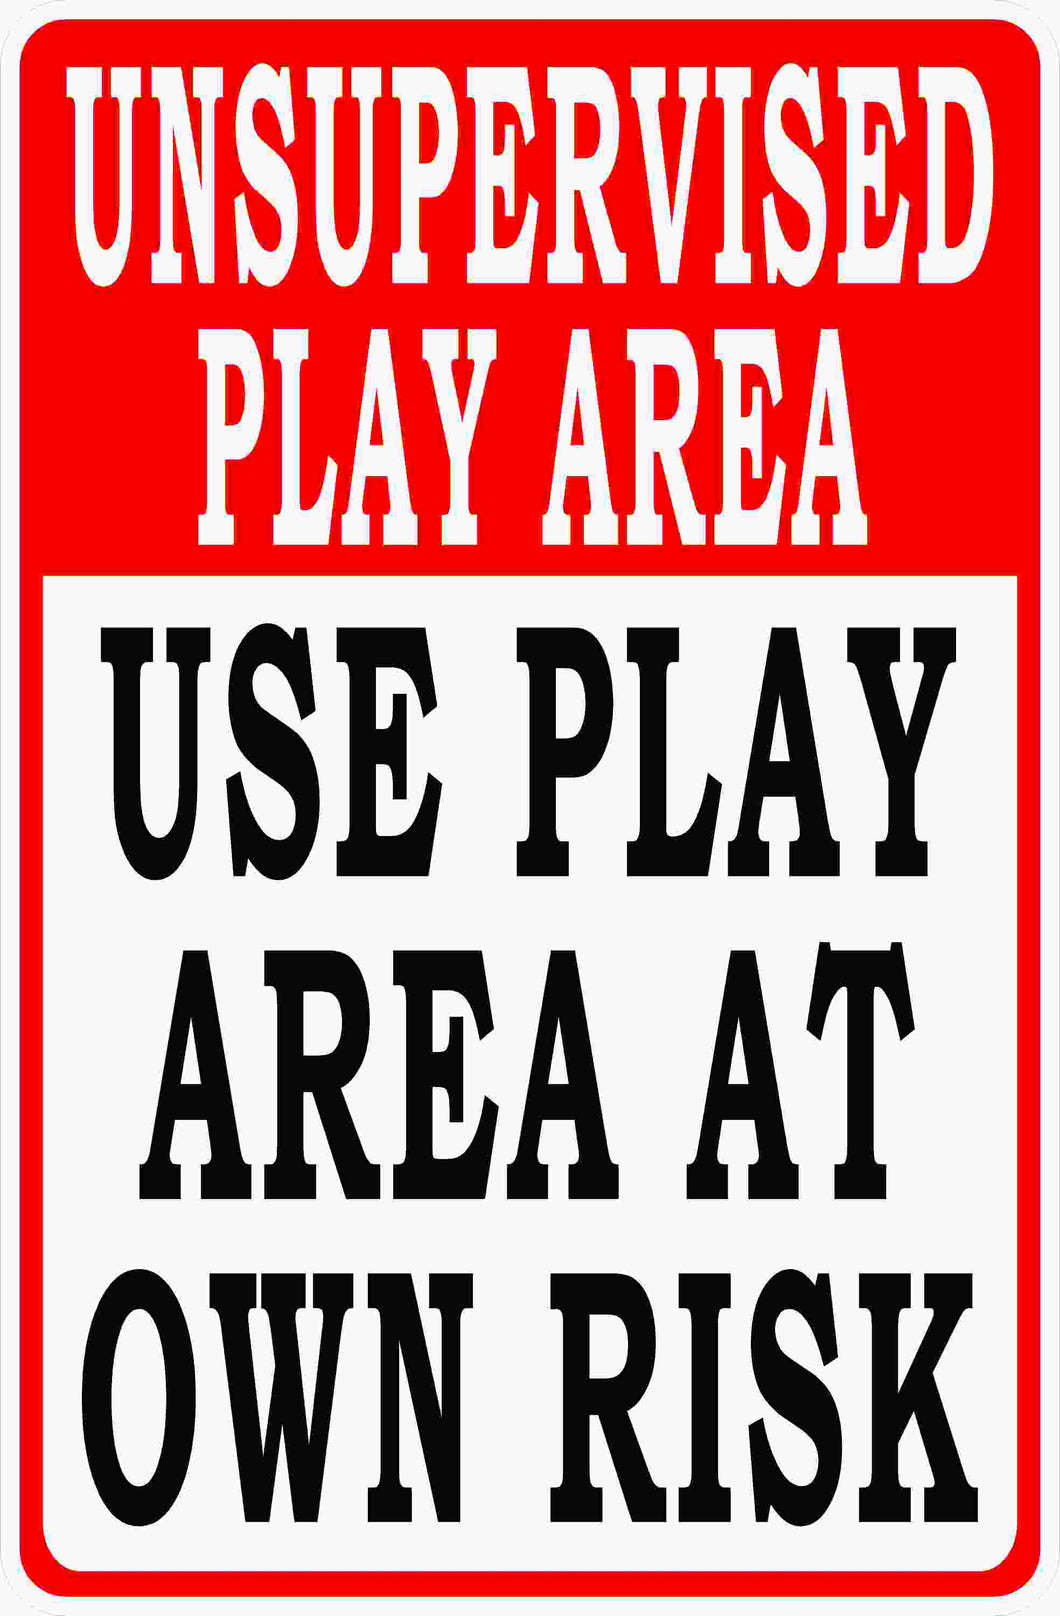 Unsupervised Play Area Sign by Sala Graphics